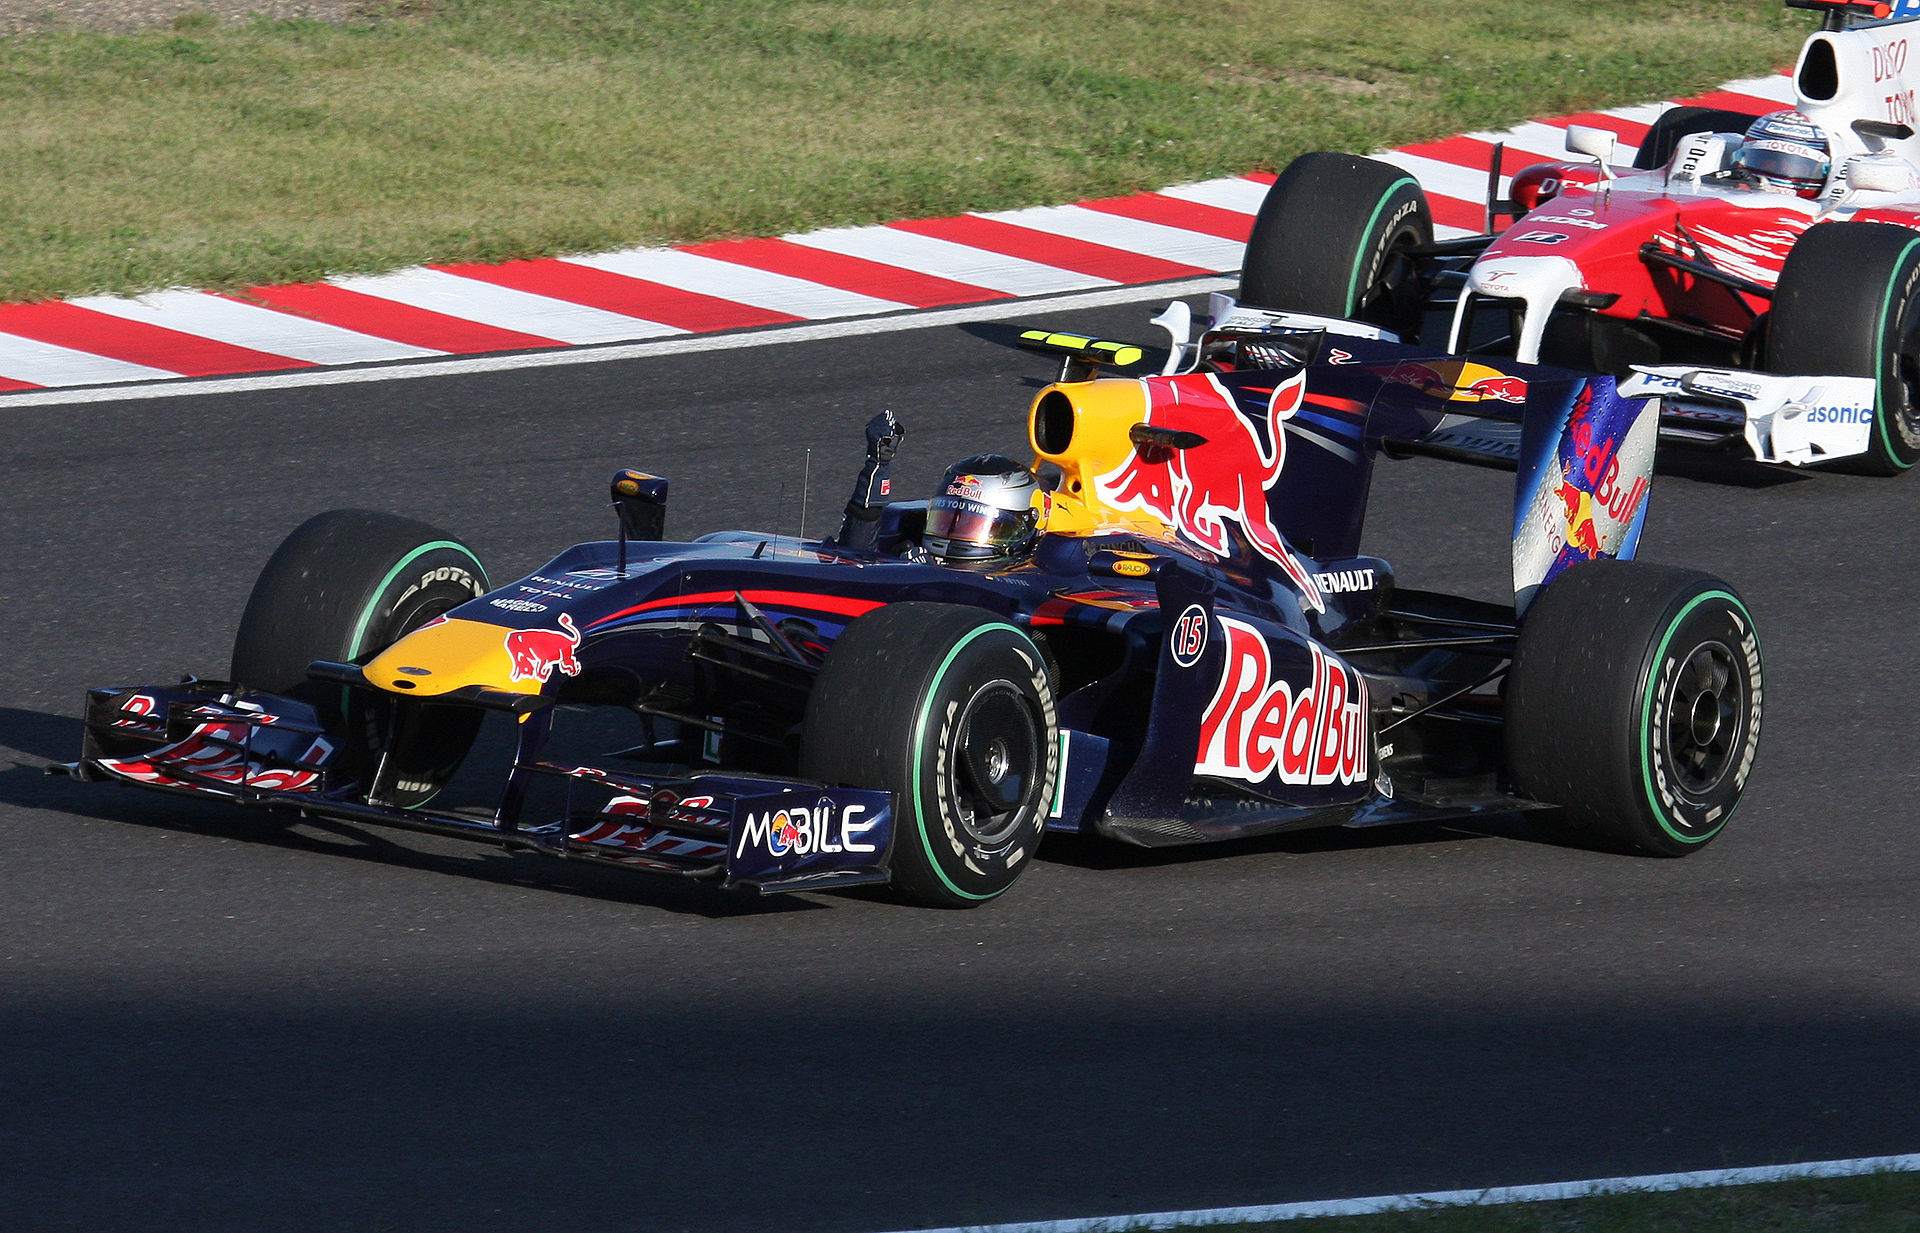 2009 Japanese Grand Prix, Red Bull RB5 equipped with KERS unit, wikimedia